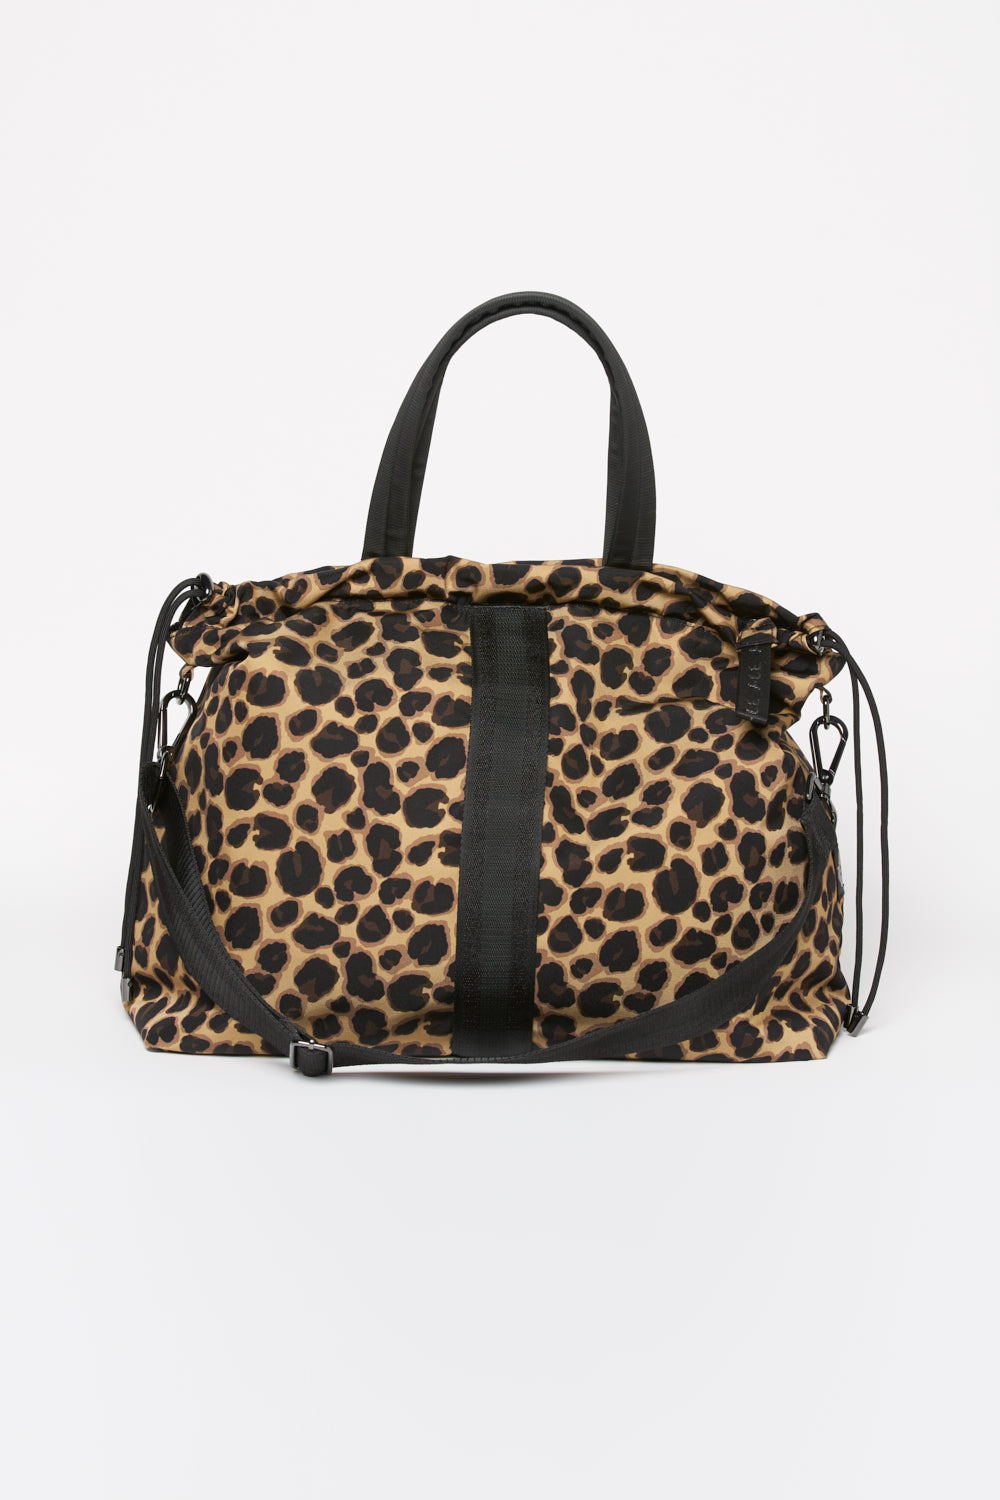 Leopard Women Tote bag eco fashion